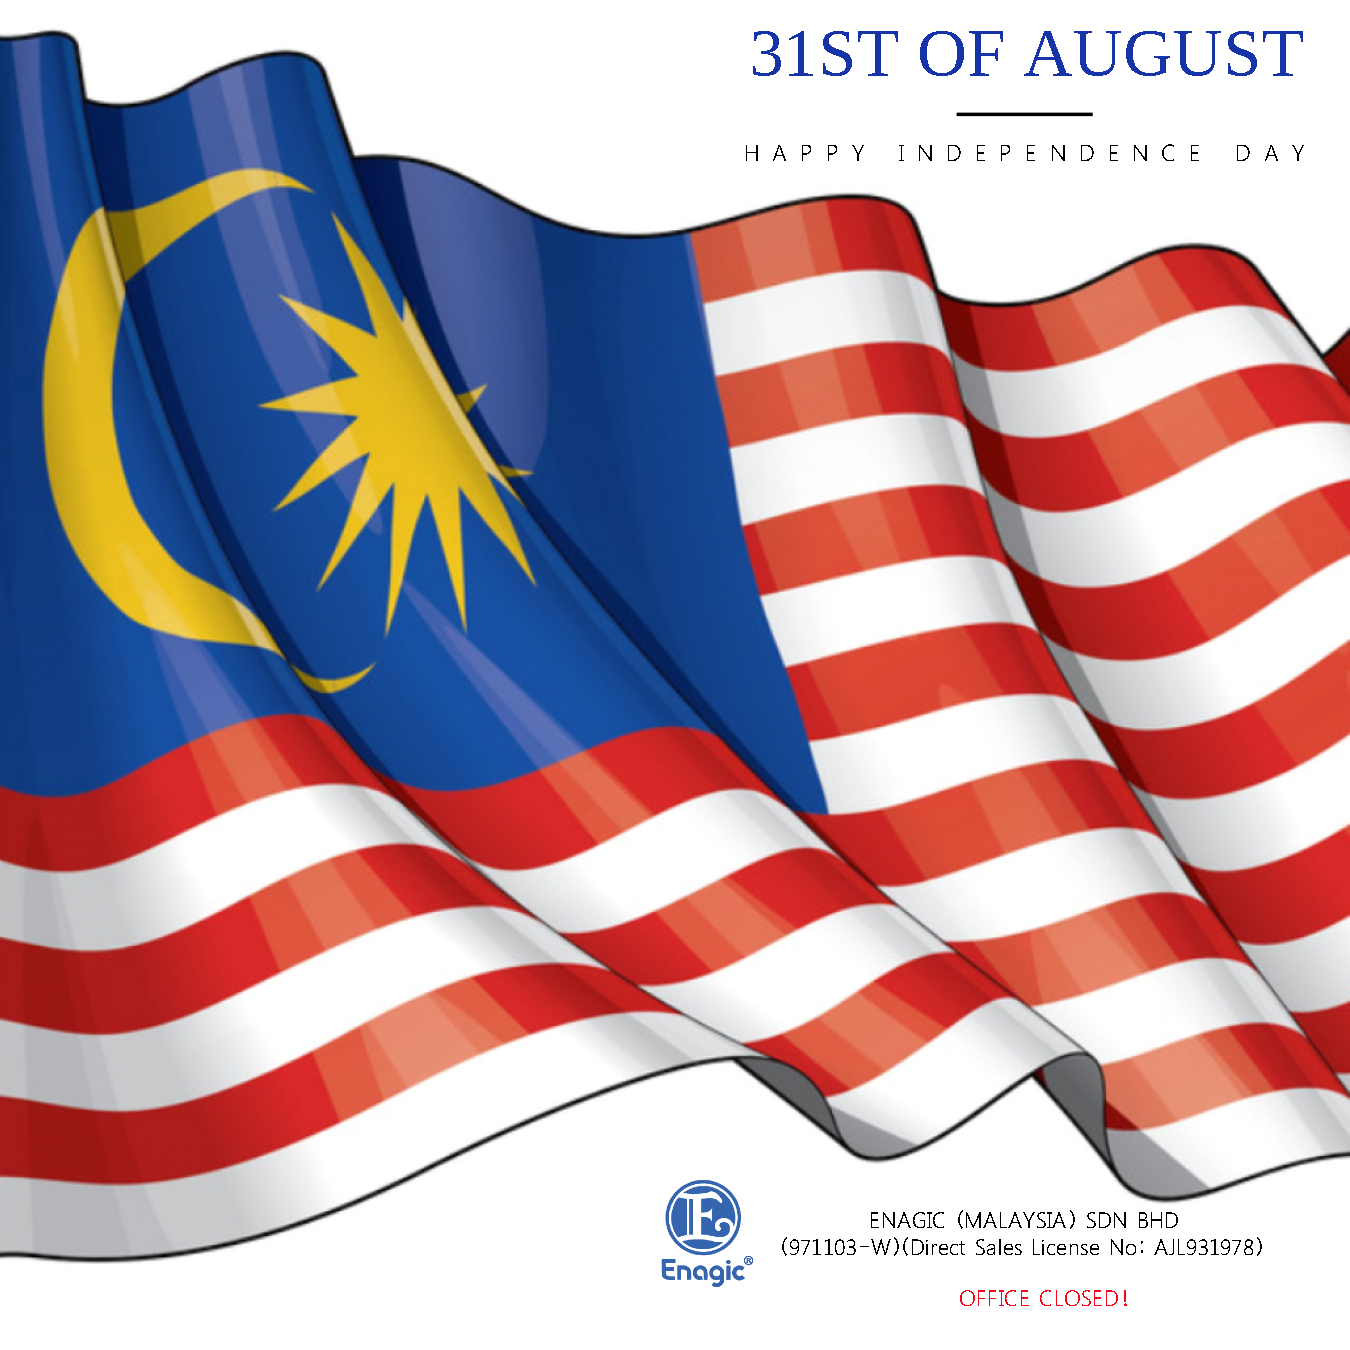 NOTICE : Happy Independence Day (Office Closed)